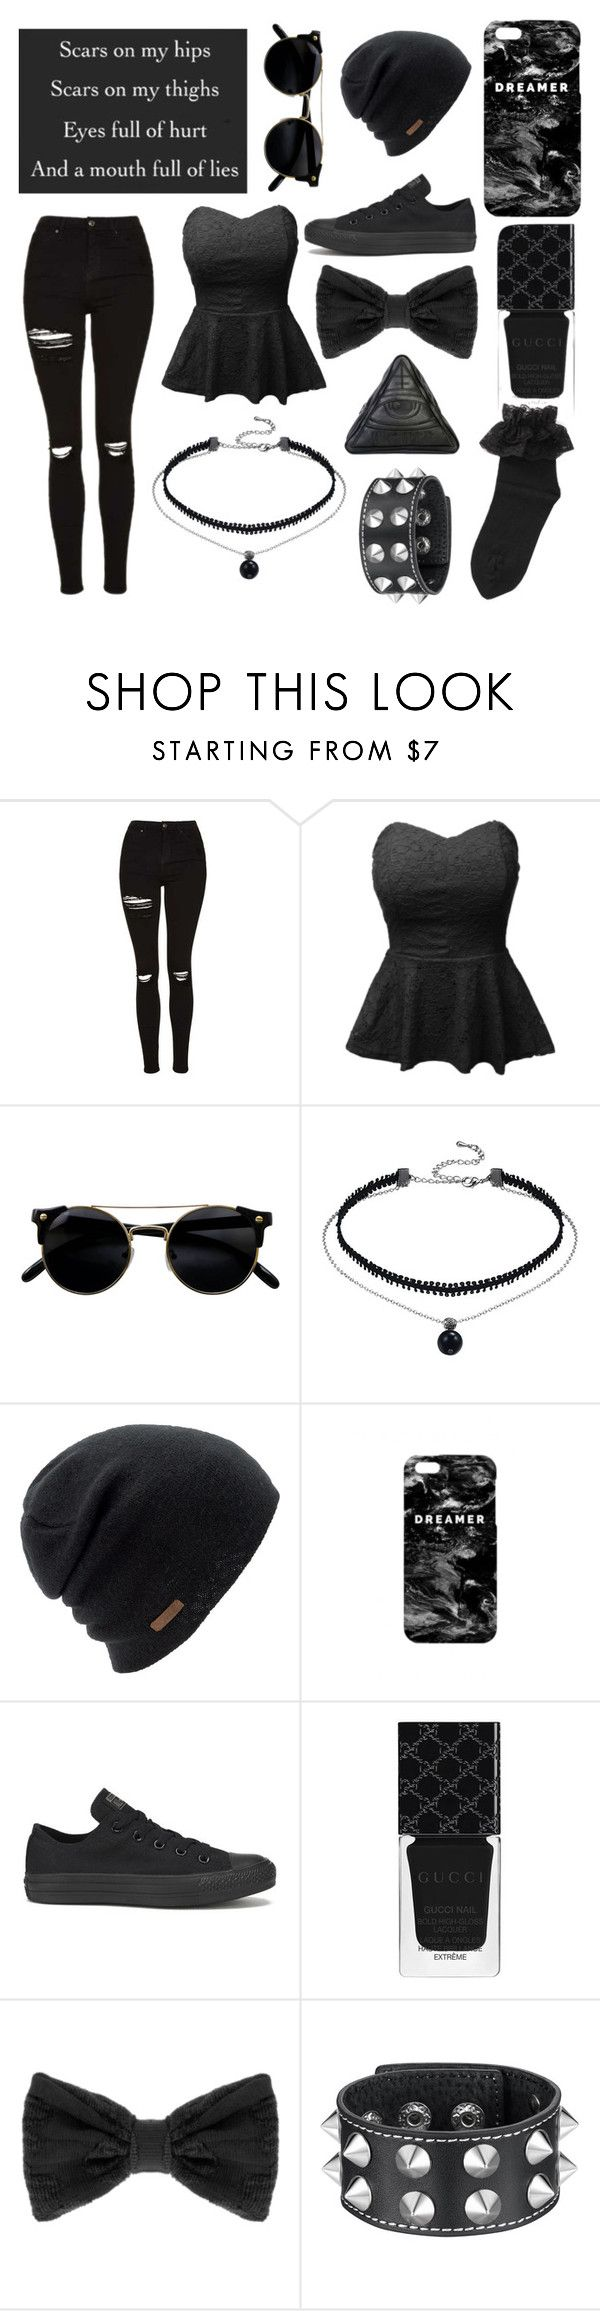 """Untitled #416"" by emo-sweetheart ❤ liked on Polyvore featuring Topshop, LE3NO, Coal, Mr. Gugu & Miss Go, Converse, Gucci, Pieces and Disturbia"